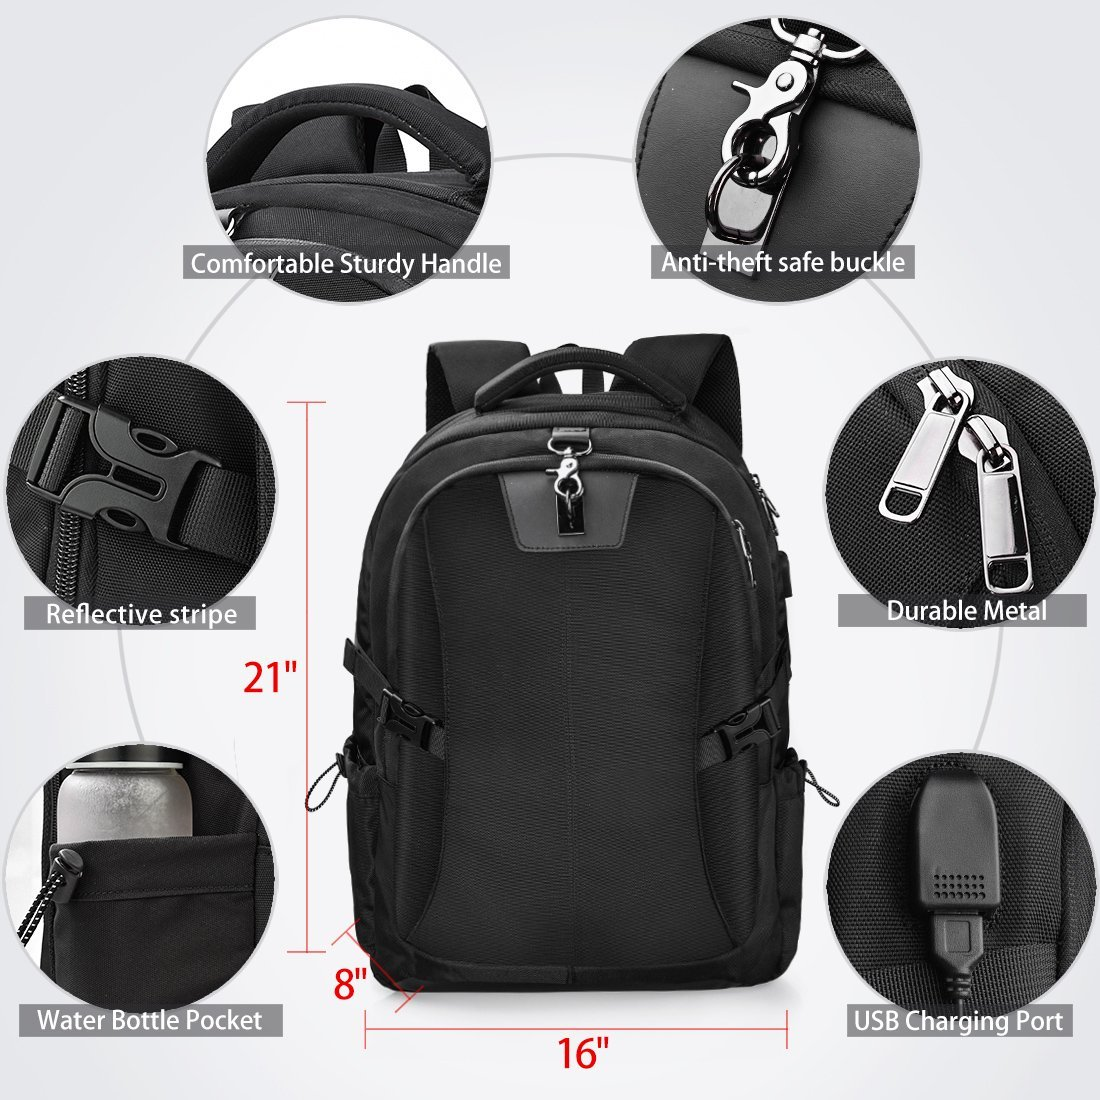 Laptop Backpack 17.3 Inch Travel Anti-theft Waterproof School Backpack Business College Large Capacity Gaming Laptop Backpacks USB Charging Port for Men Women Black by NEWHEY (Image #5)